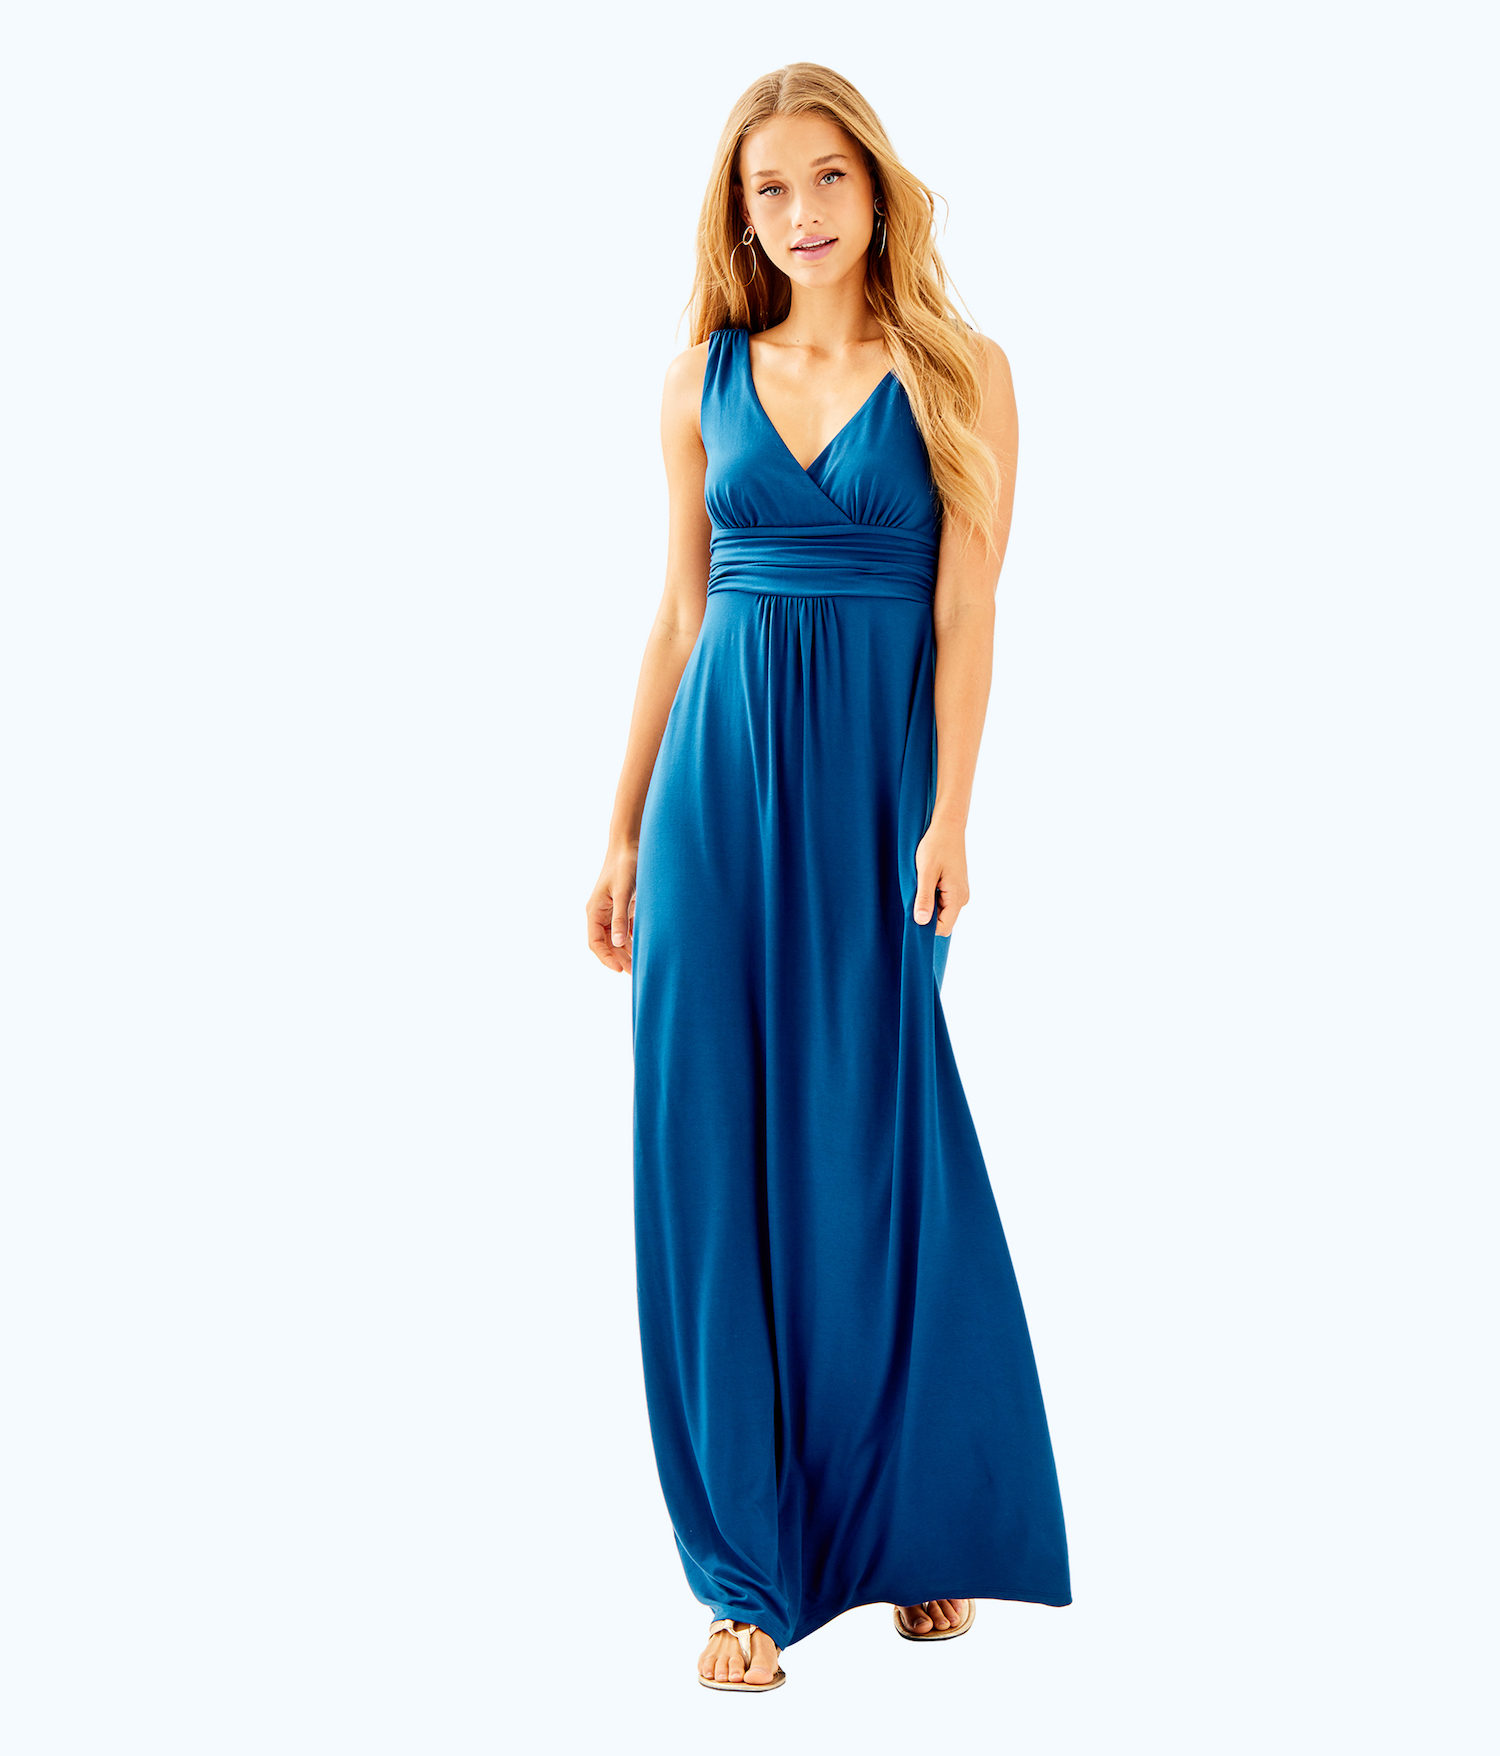 Lilly Pulitzer Sloane V Neck Maxi Dress